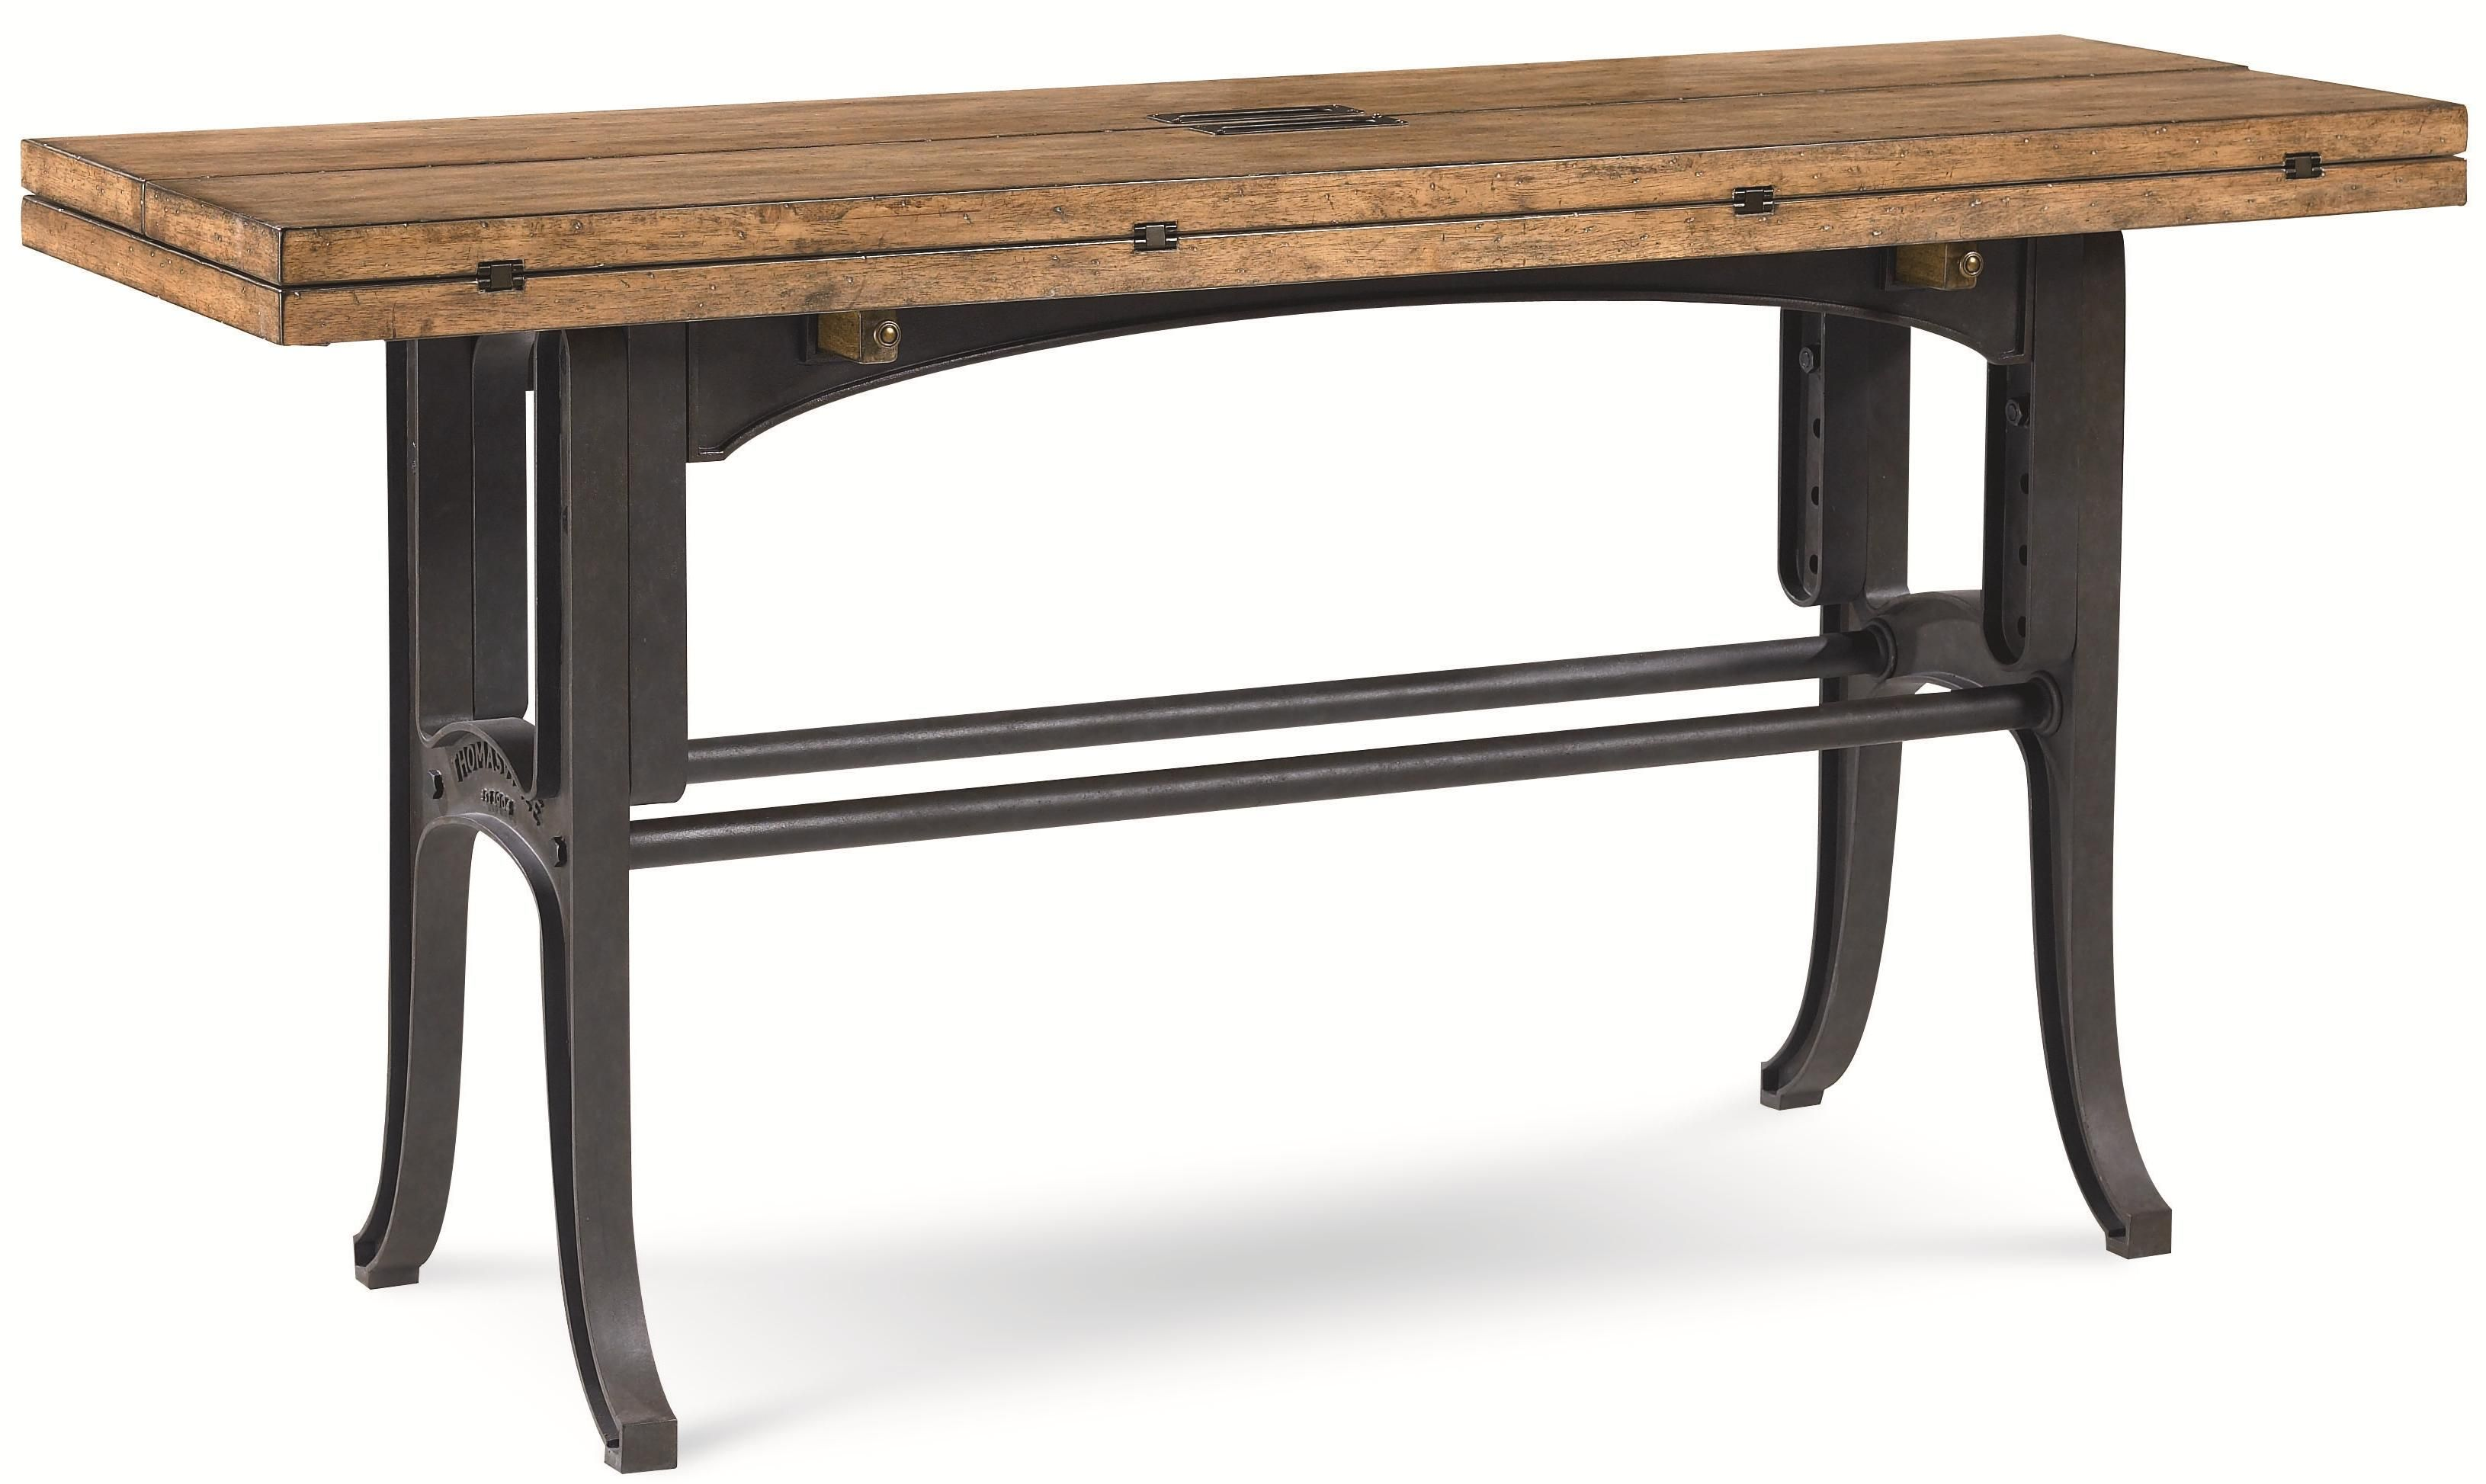 Reinventions Boulton And Watt Flip Top Sofa Table By Thomasville